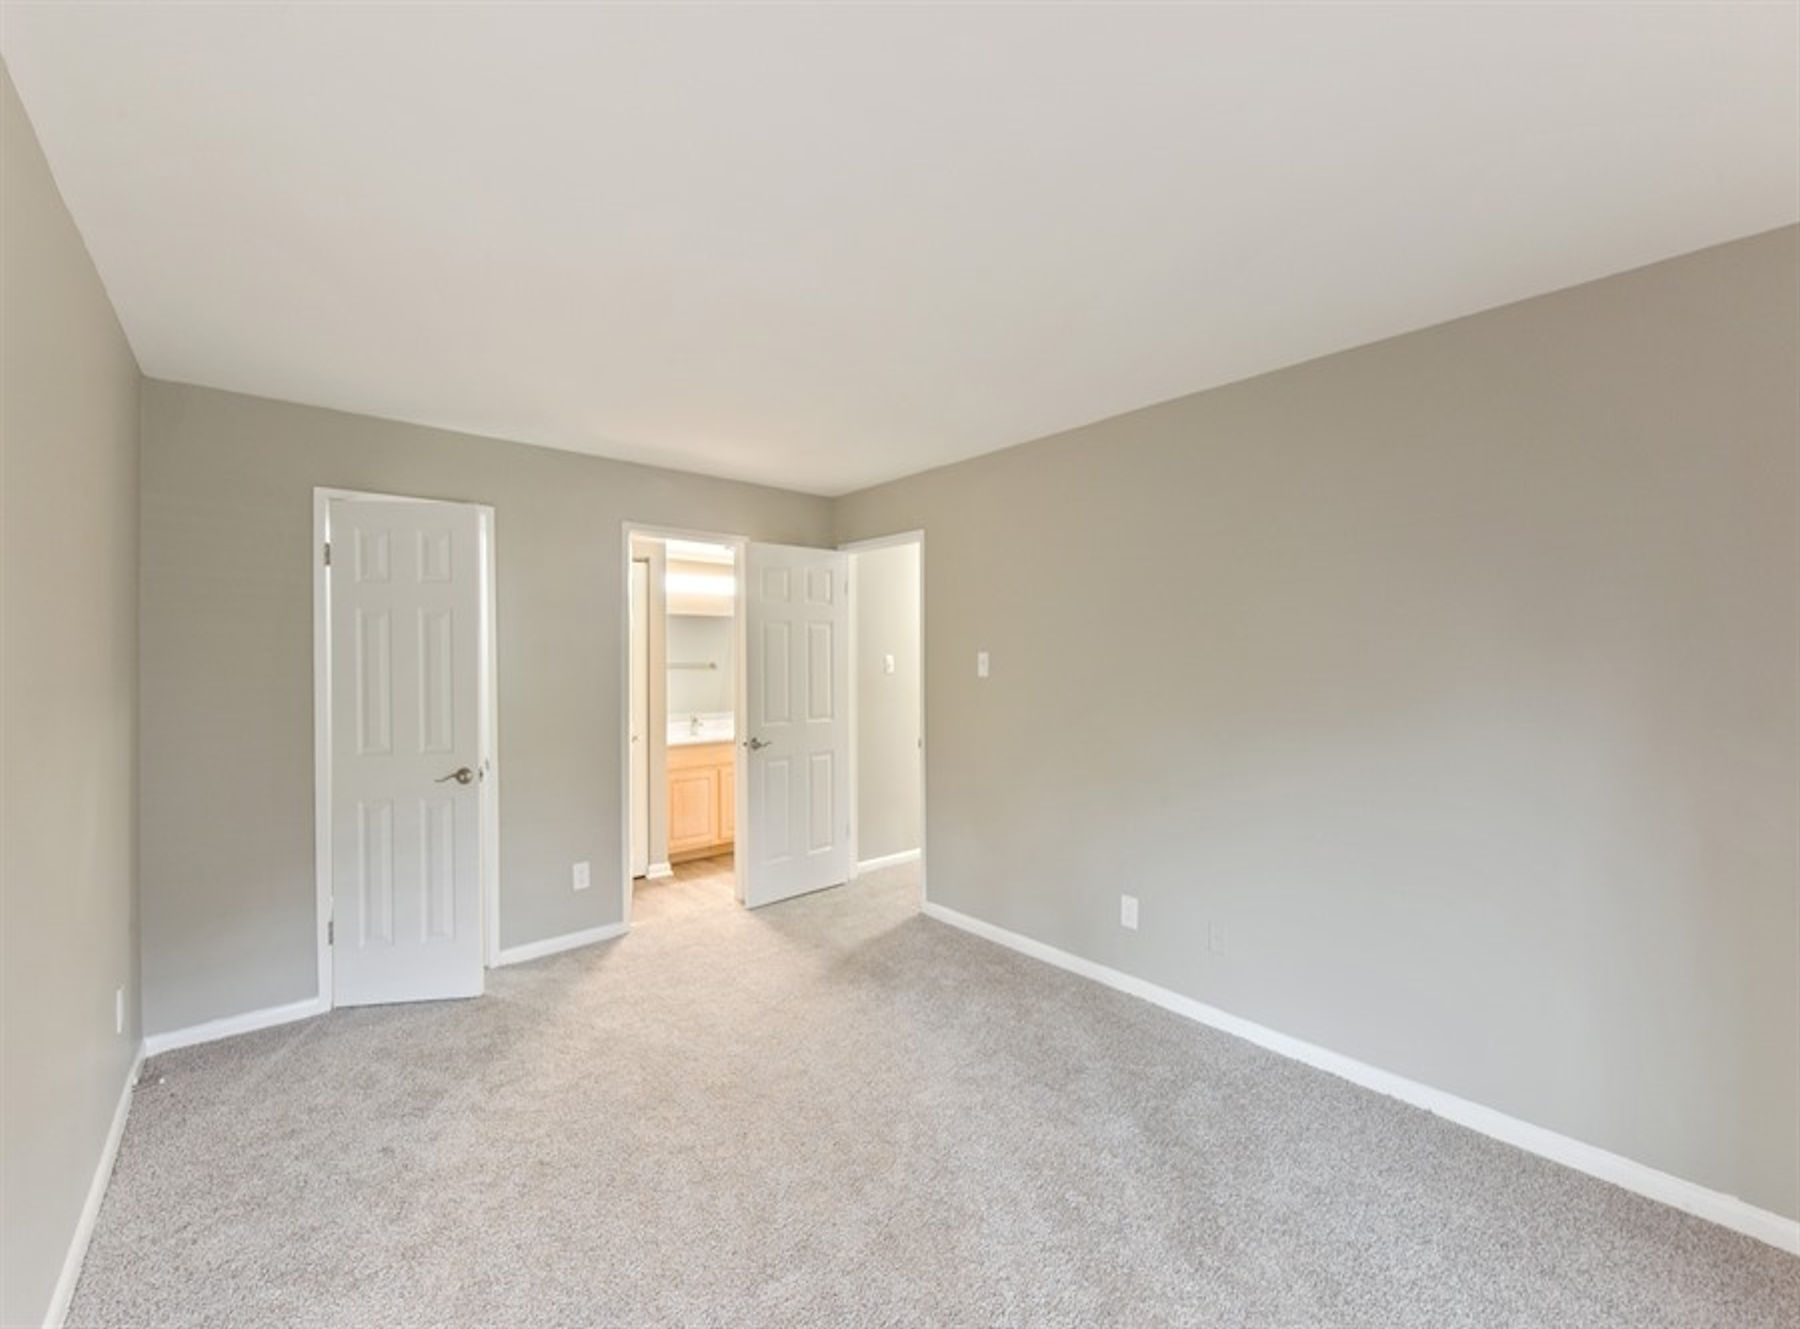 Model bedroom with closet, bathroom, carpet, and modern two tone paint.